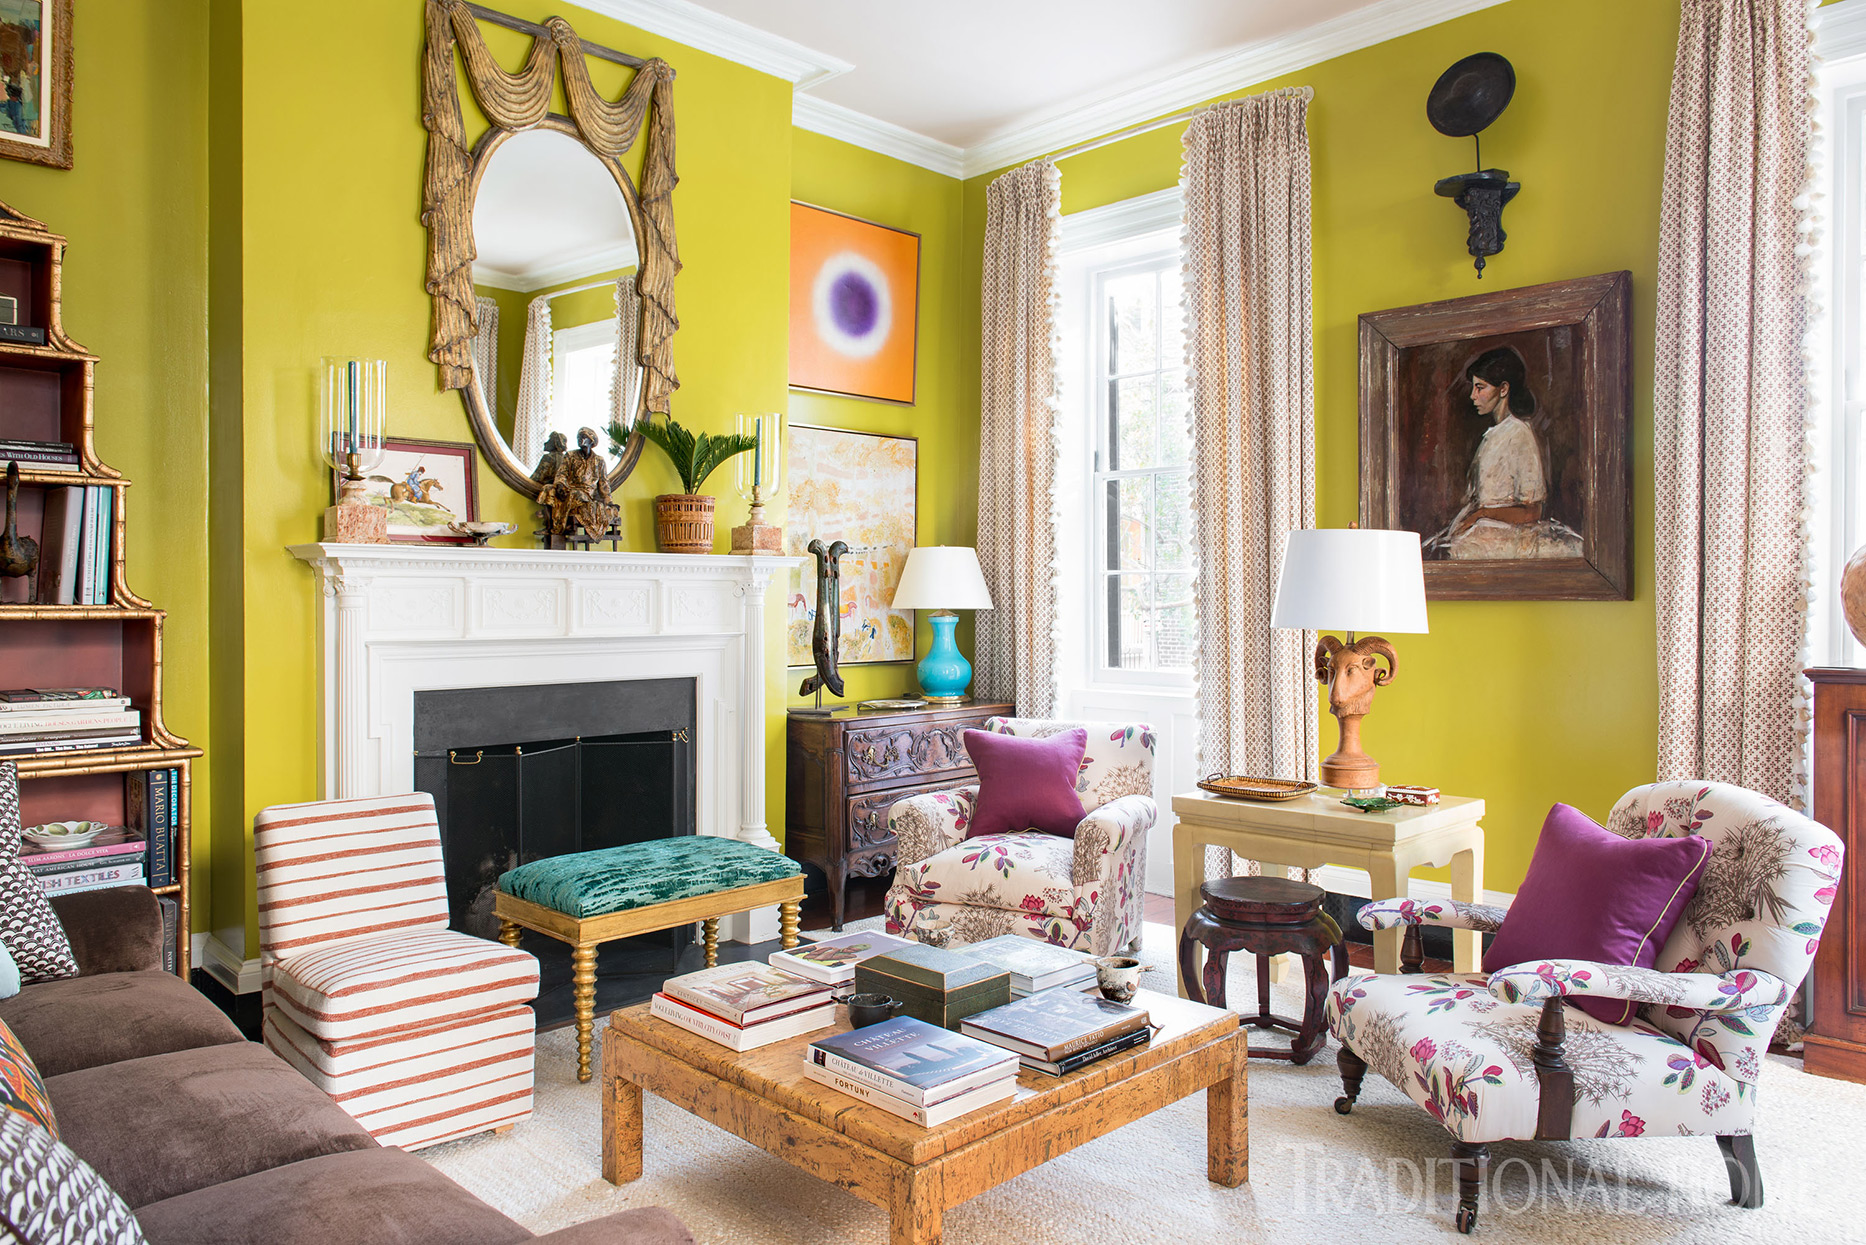 parlor with antique furniture and bright chartreuse walls